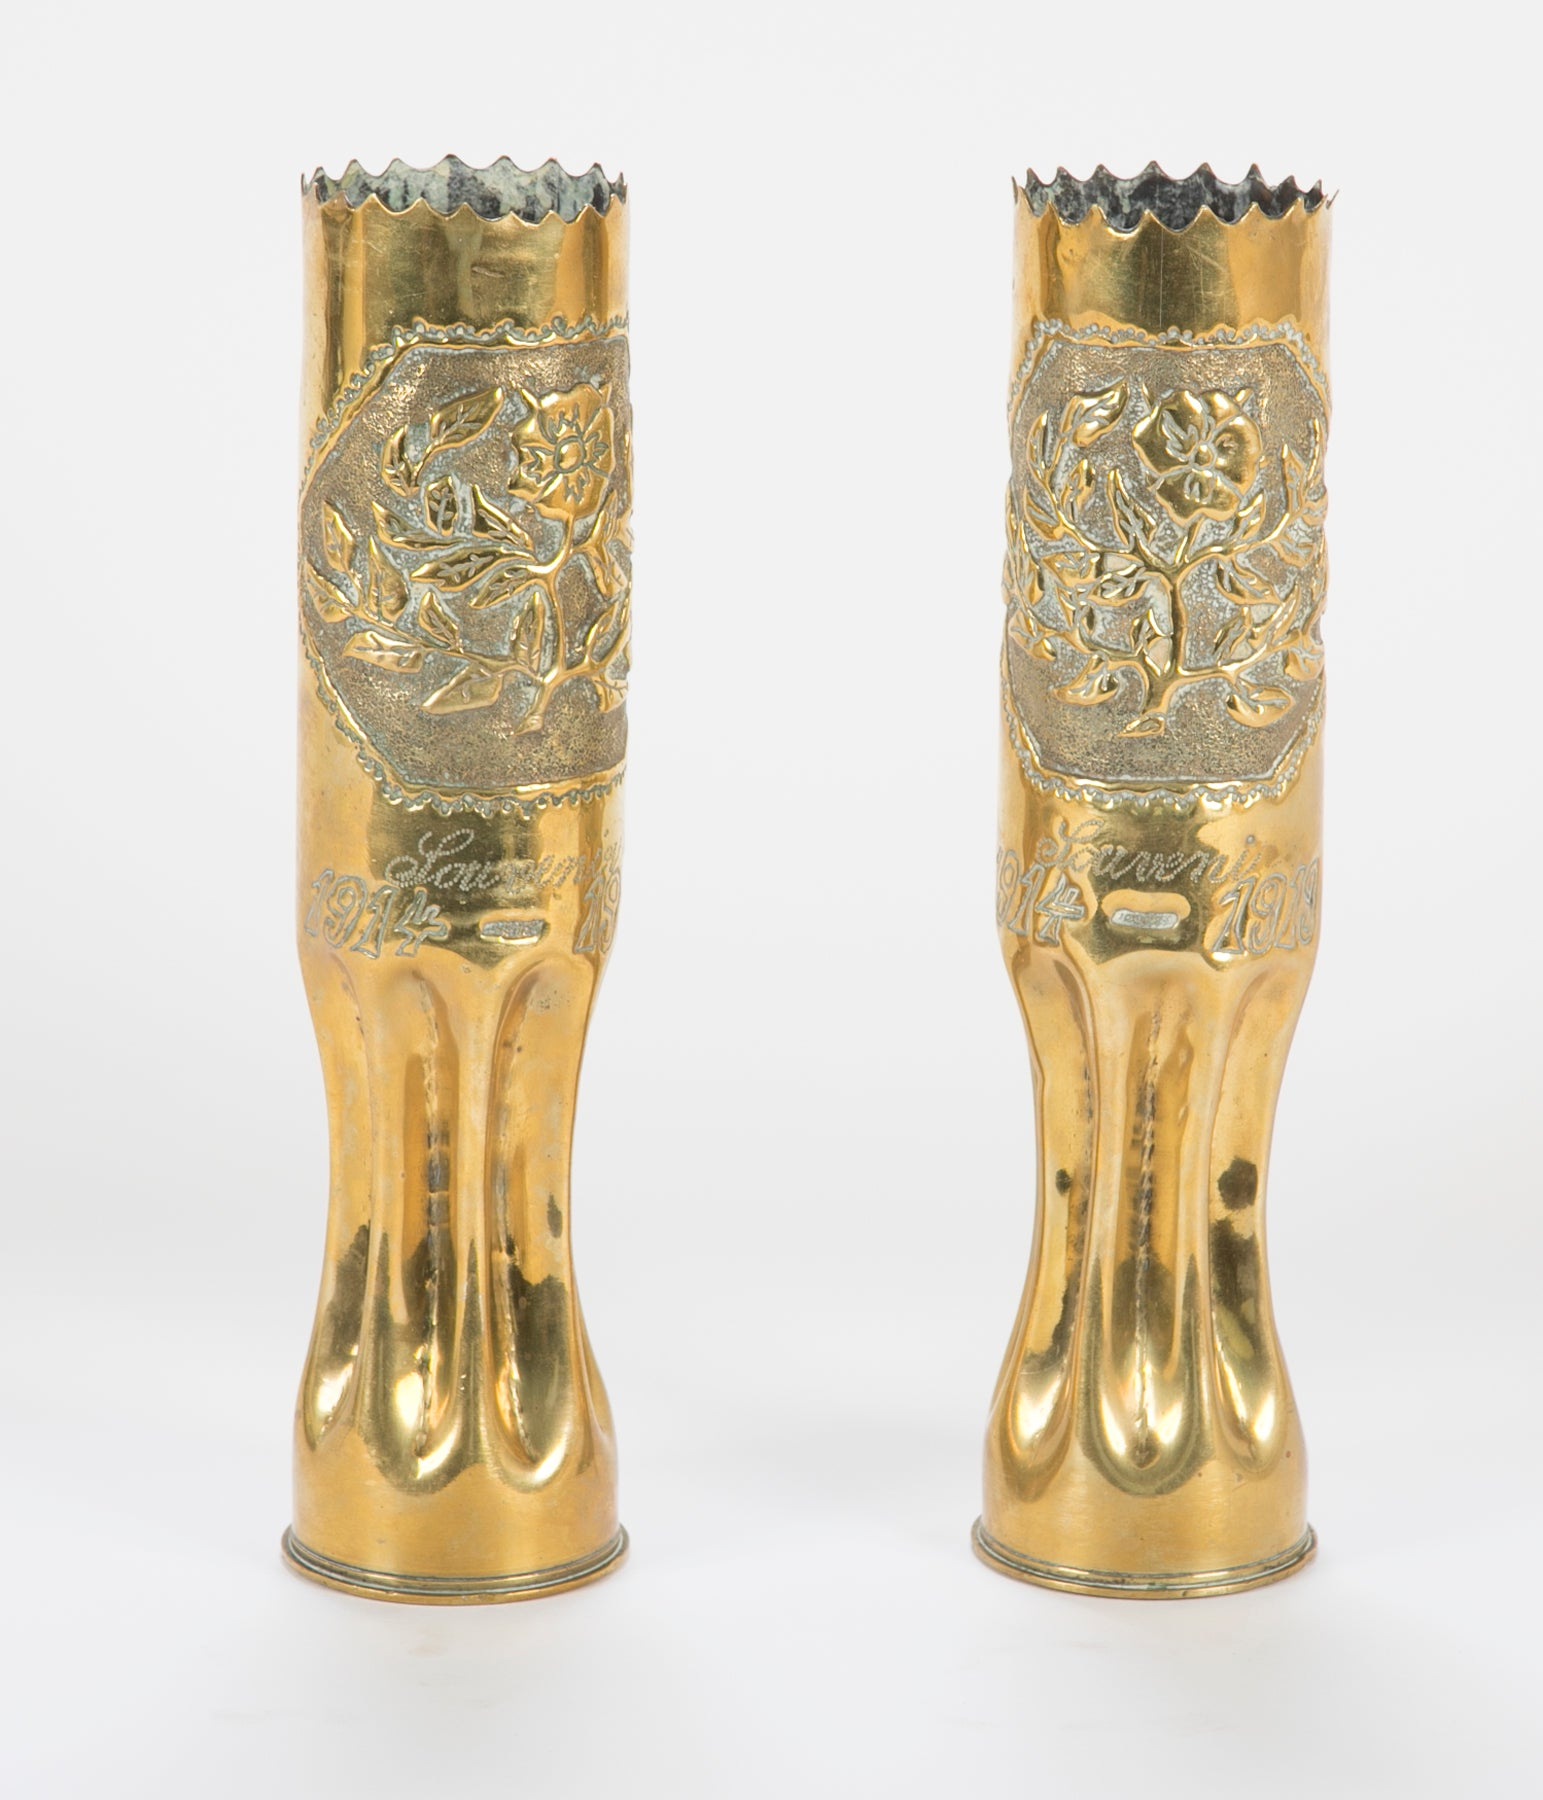 Trench / Folk Art Pair of Vases Made From French WW I Artillery Shell Casings